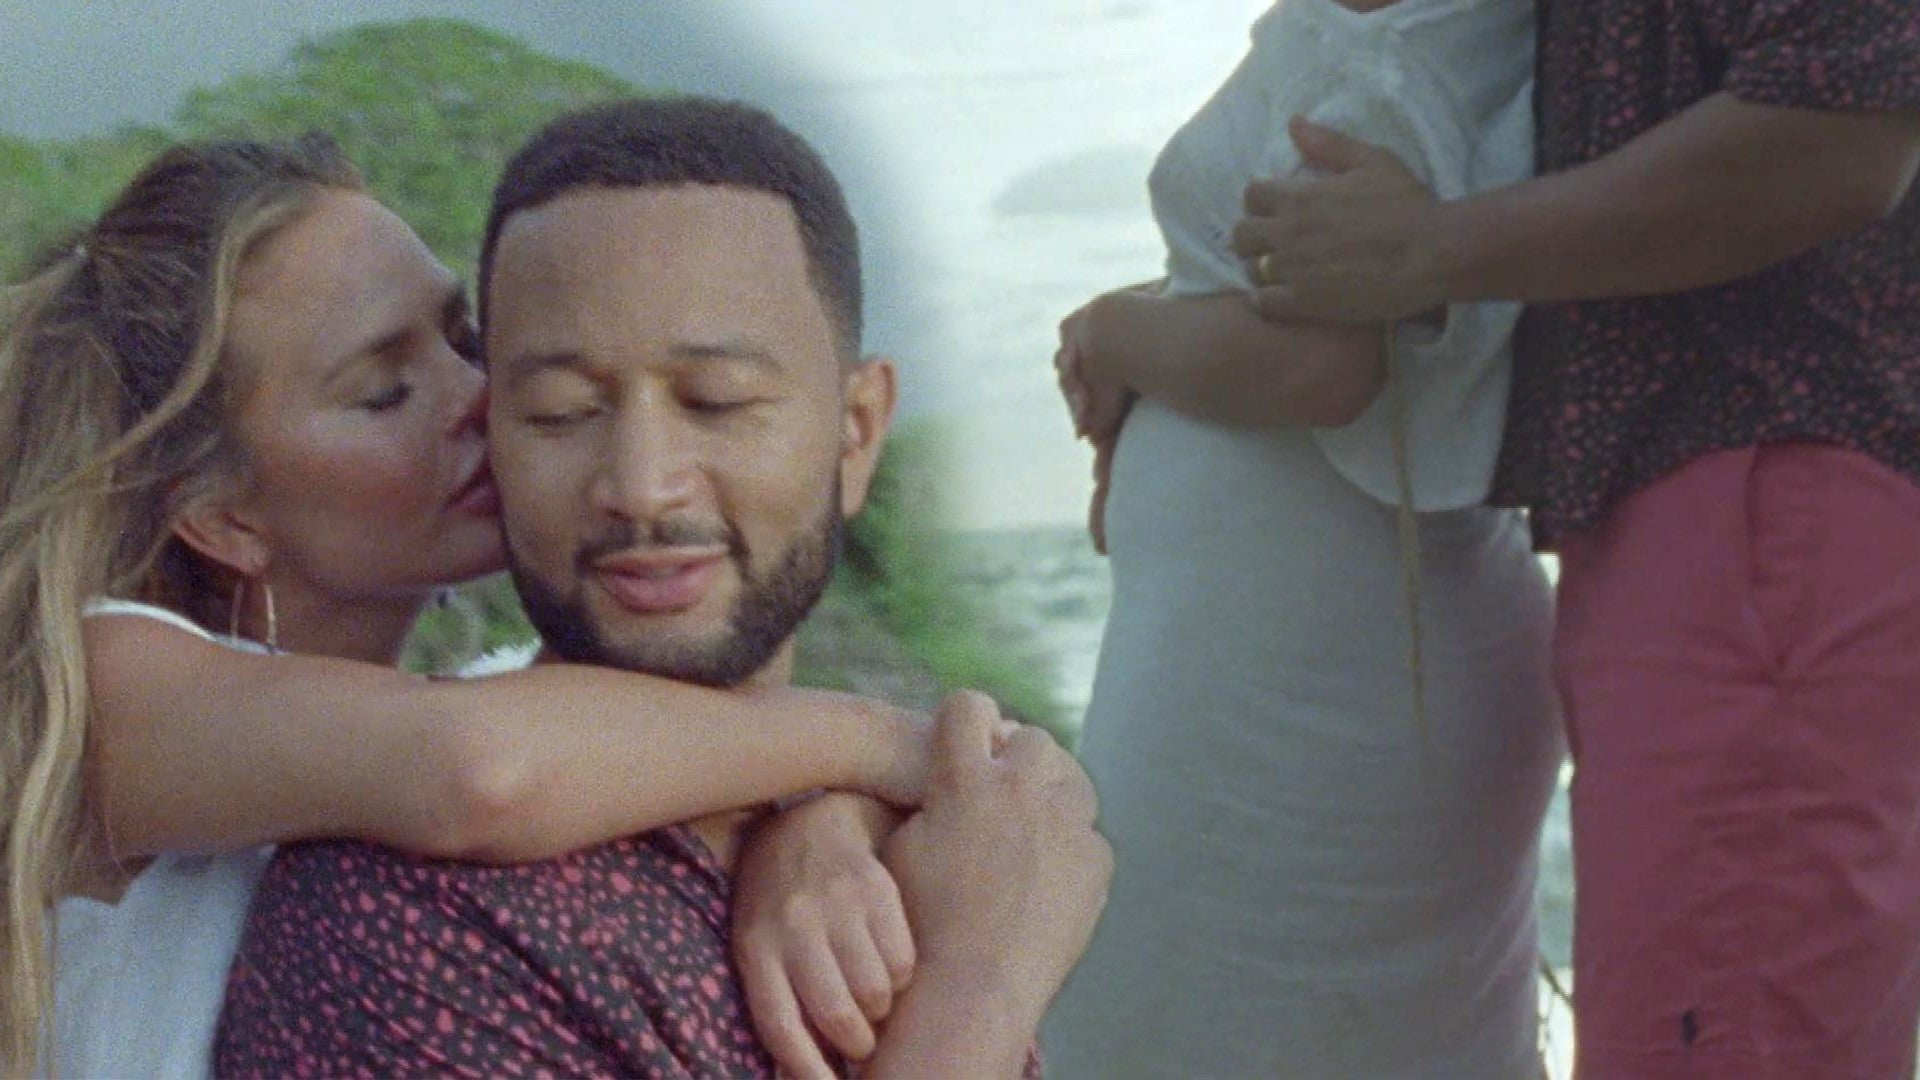 Chrissy Teigen Reveals She's Pregnant With Baby No. 3 in John Legend's  'Wild' Music Video